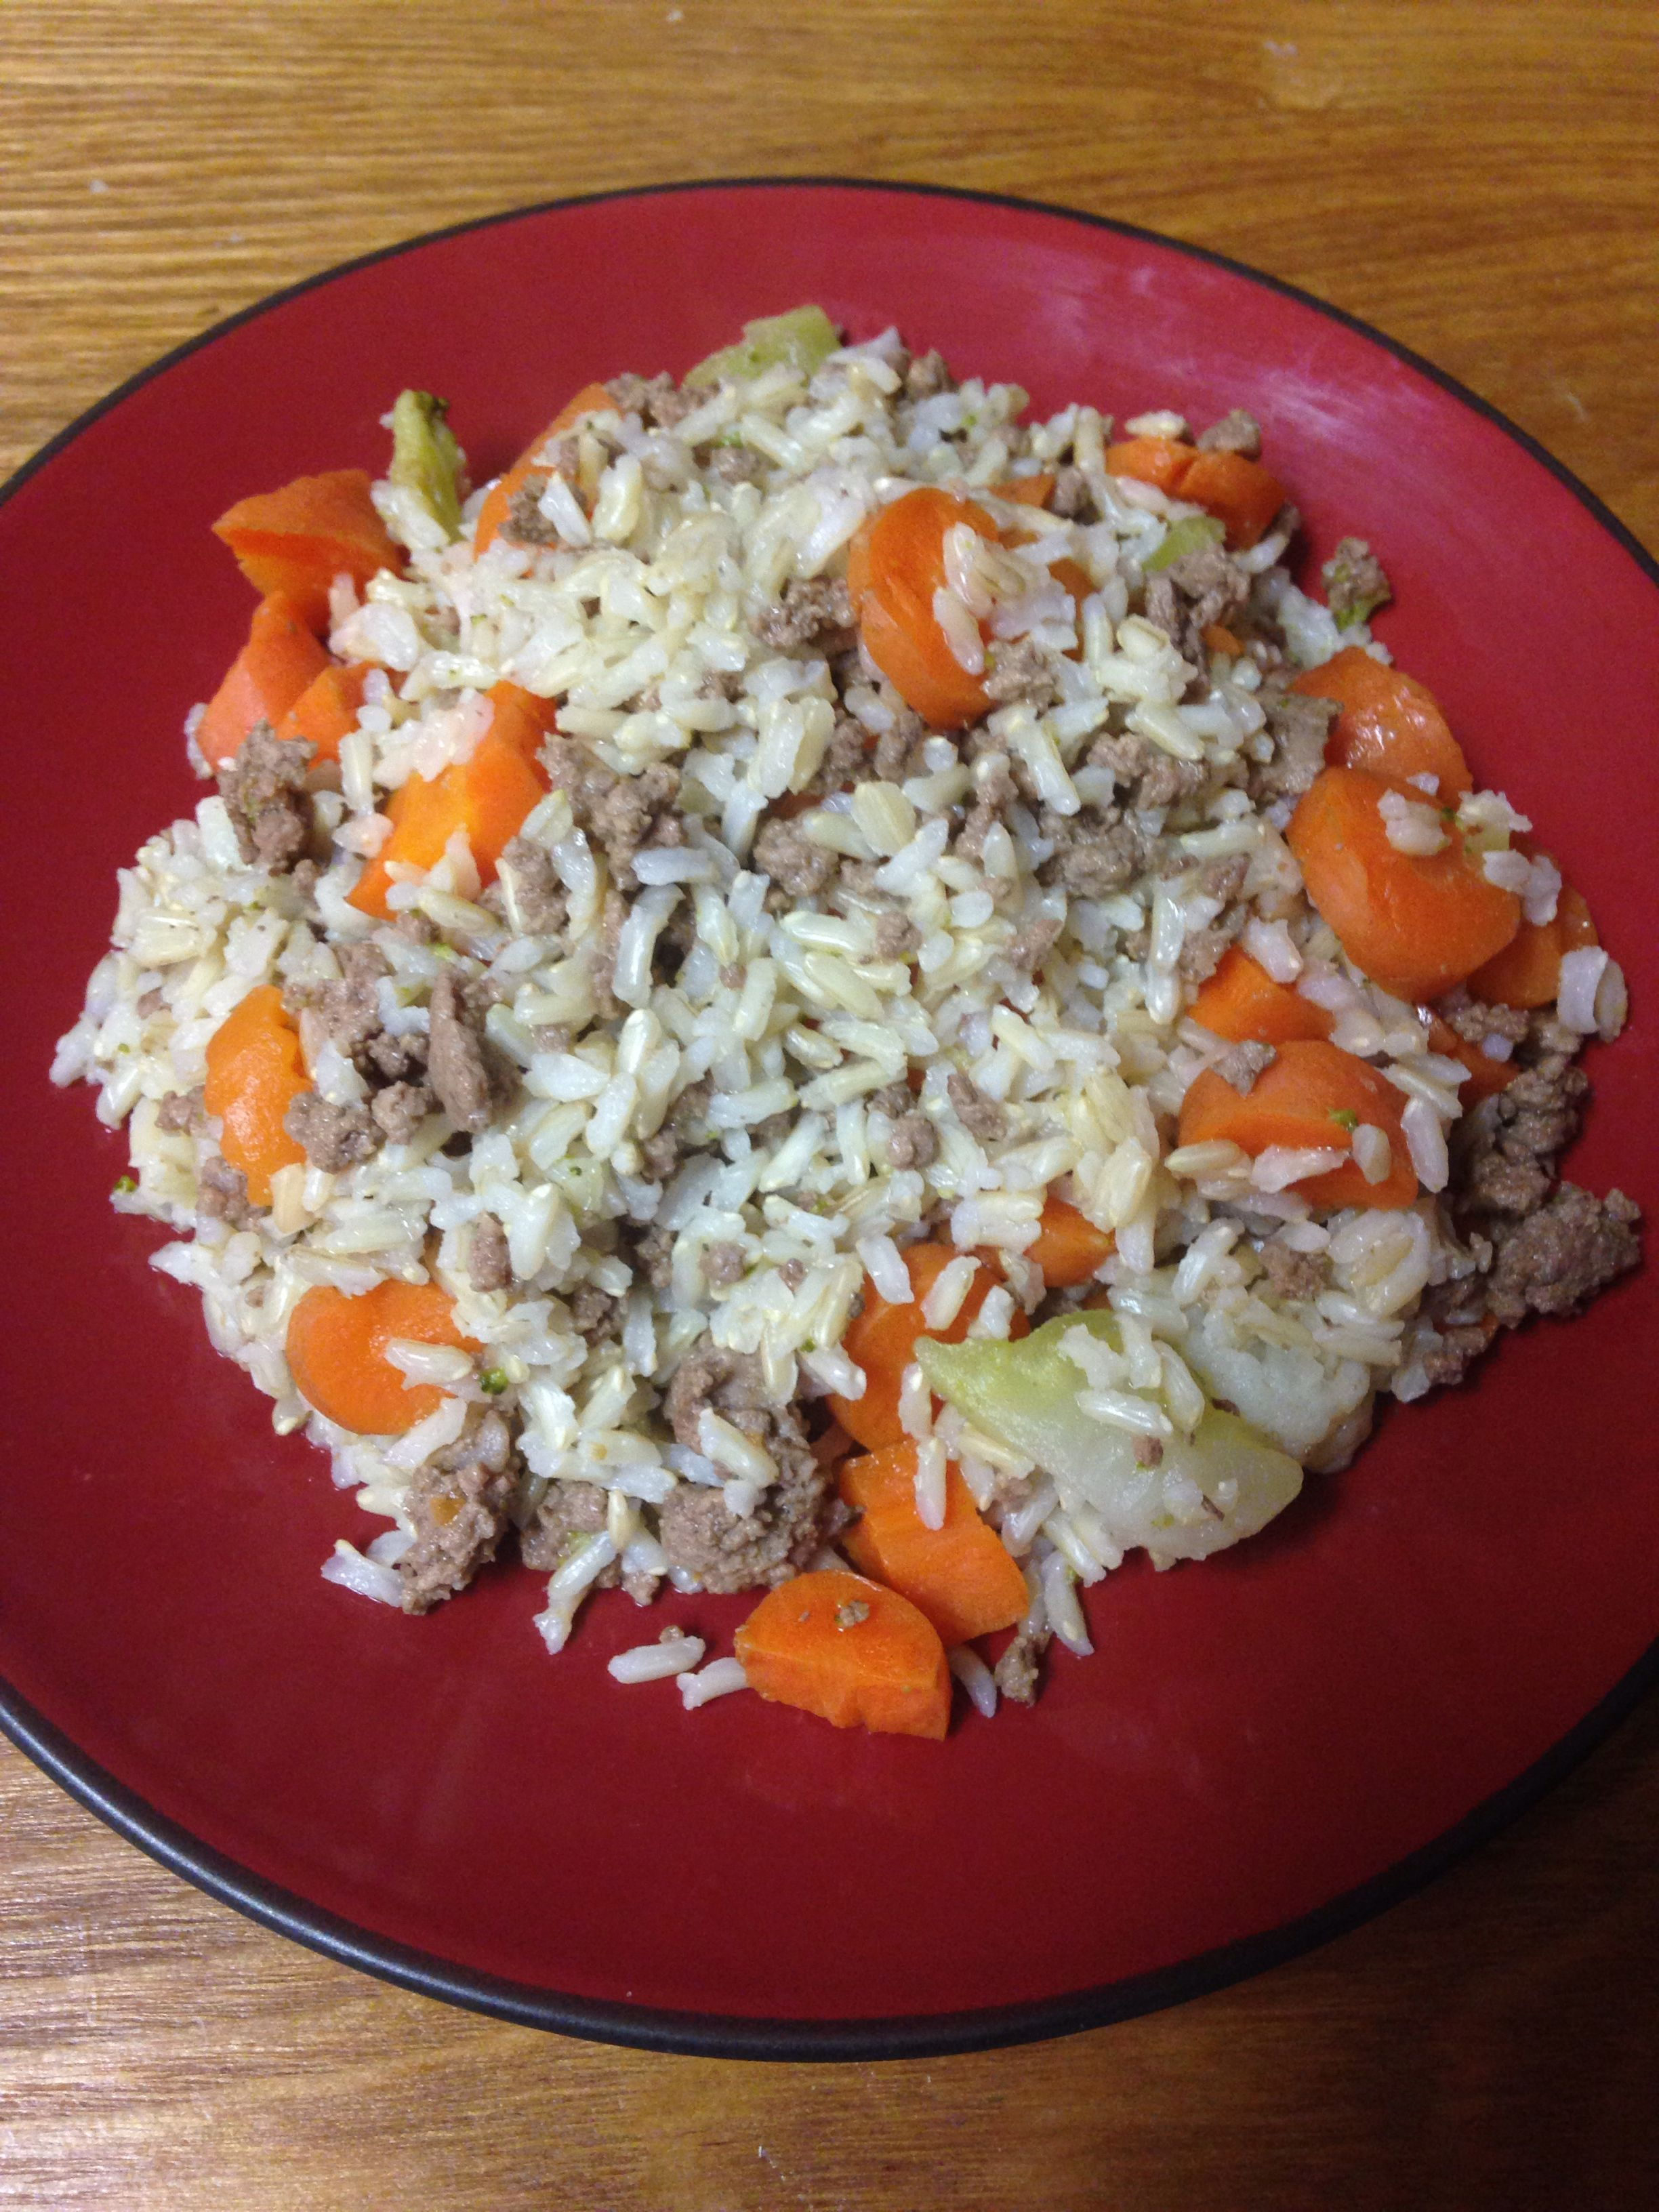 Homemade Dog Food Recipe Brown Rice Carrots Broccoli Cauliflower And Lean Ground Meat Dog Food Recipes Homemade Dog Food Food